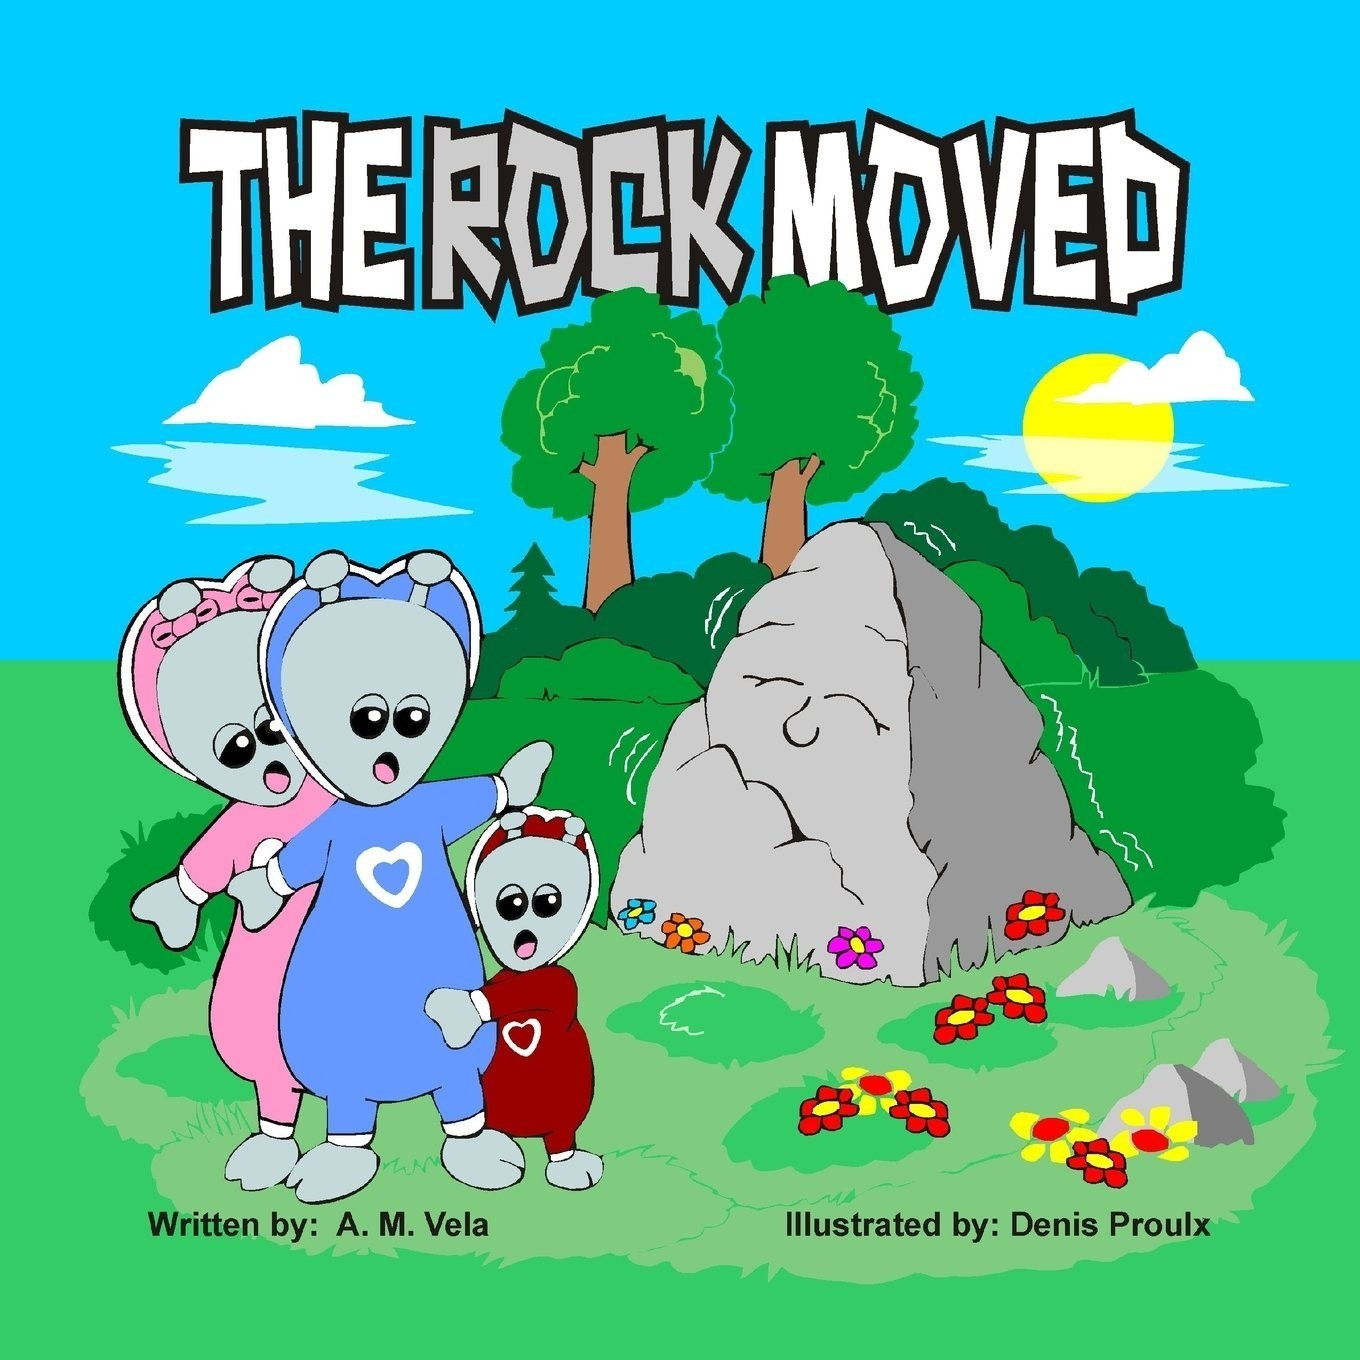 THE ROCK MOVED